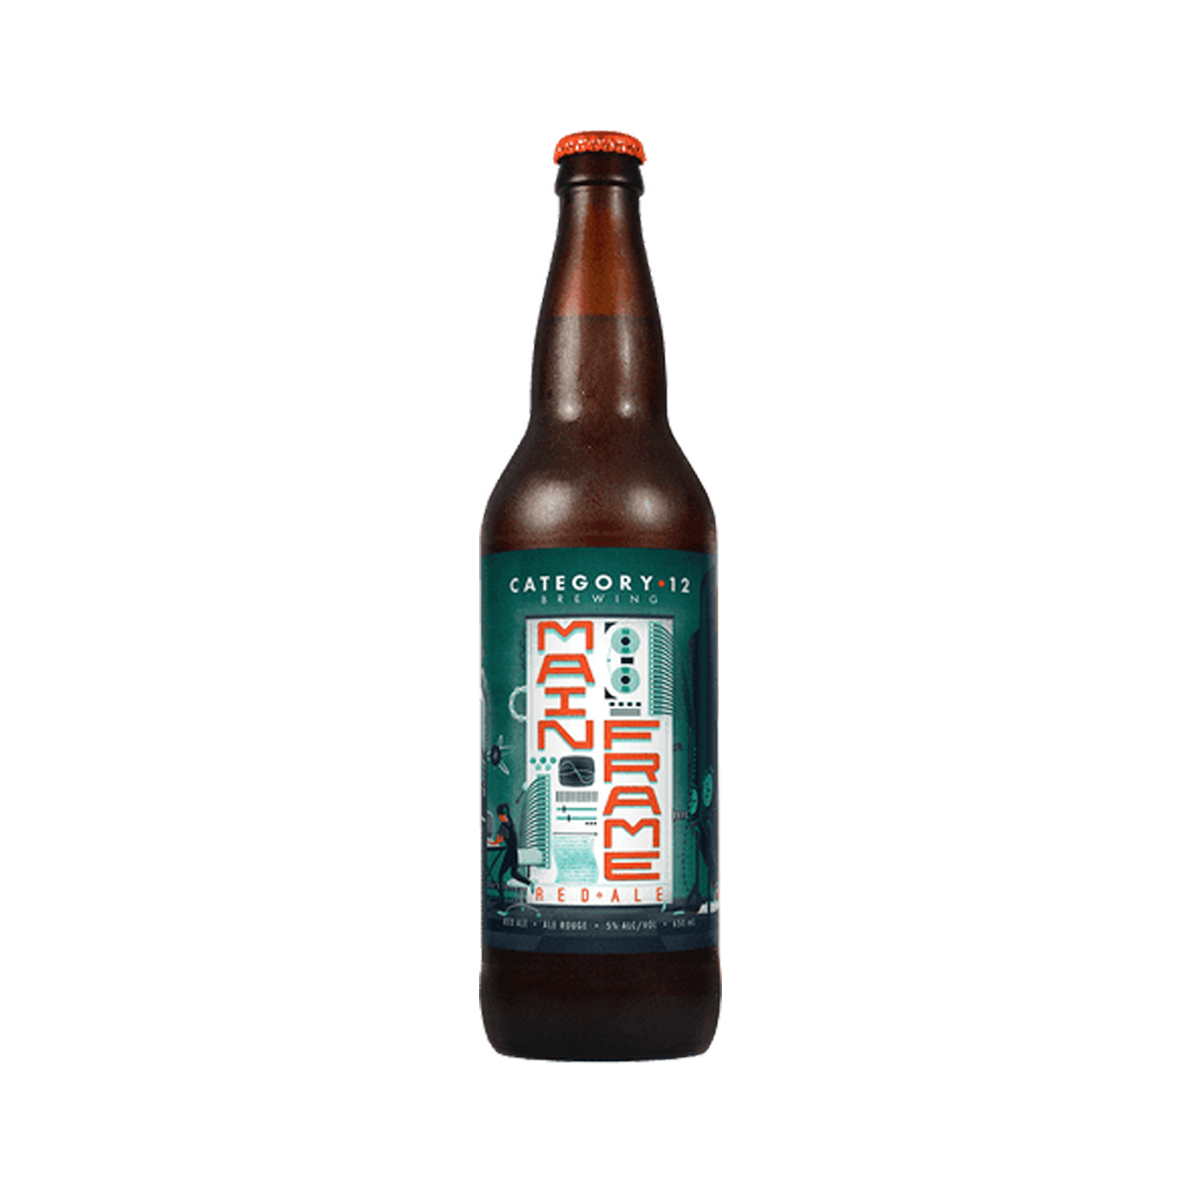 Category 12 BrewingMainframe Red Ale - Light + fruity with good malt balance$6.29, 650mlVictoria, BC